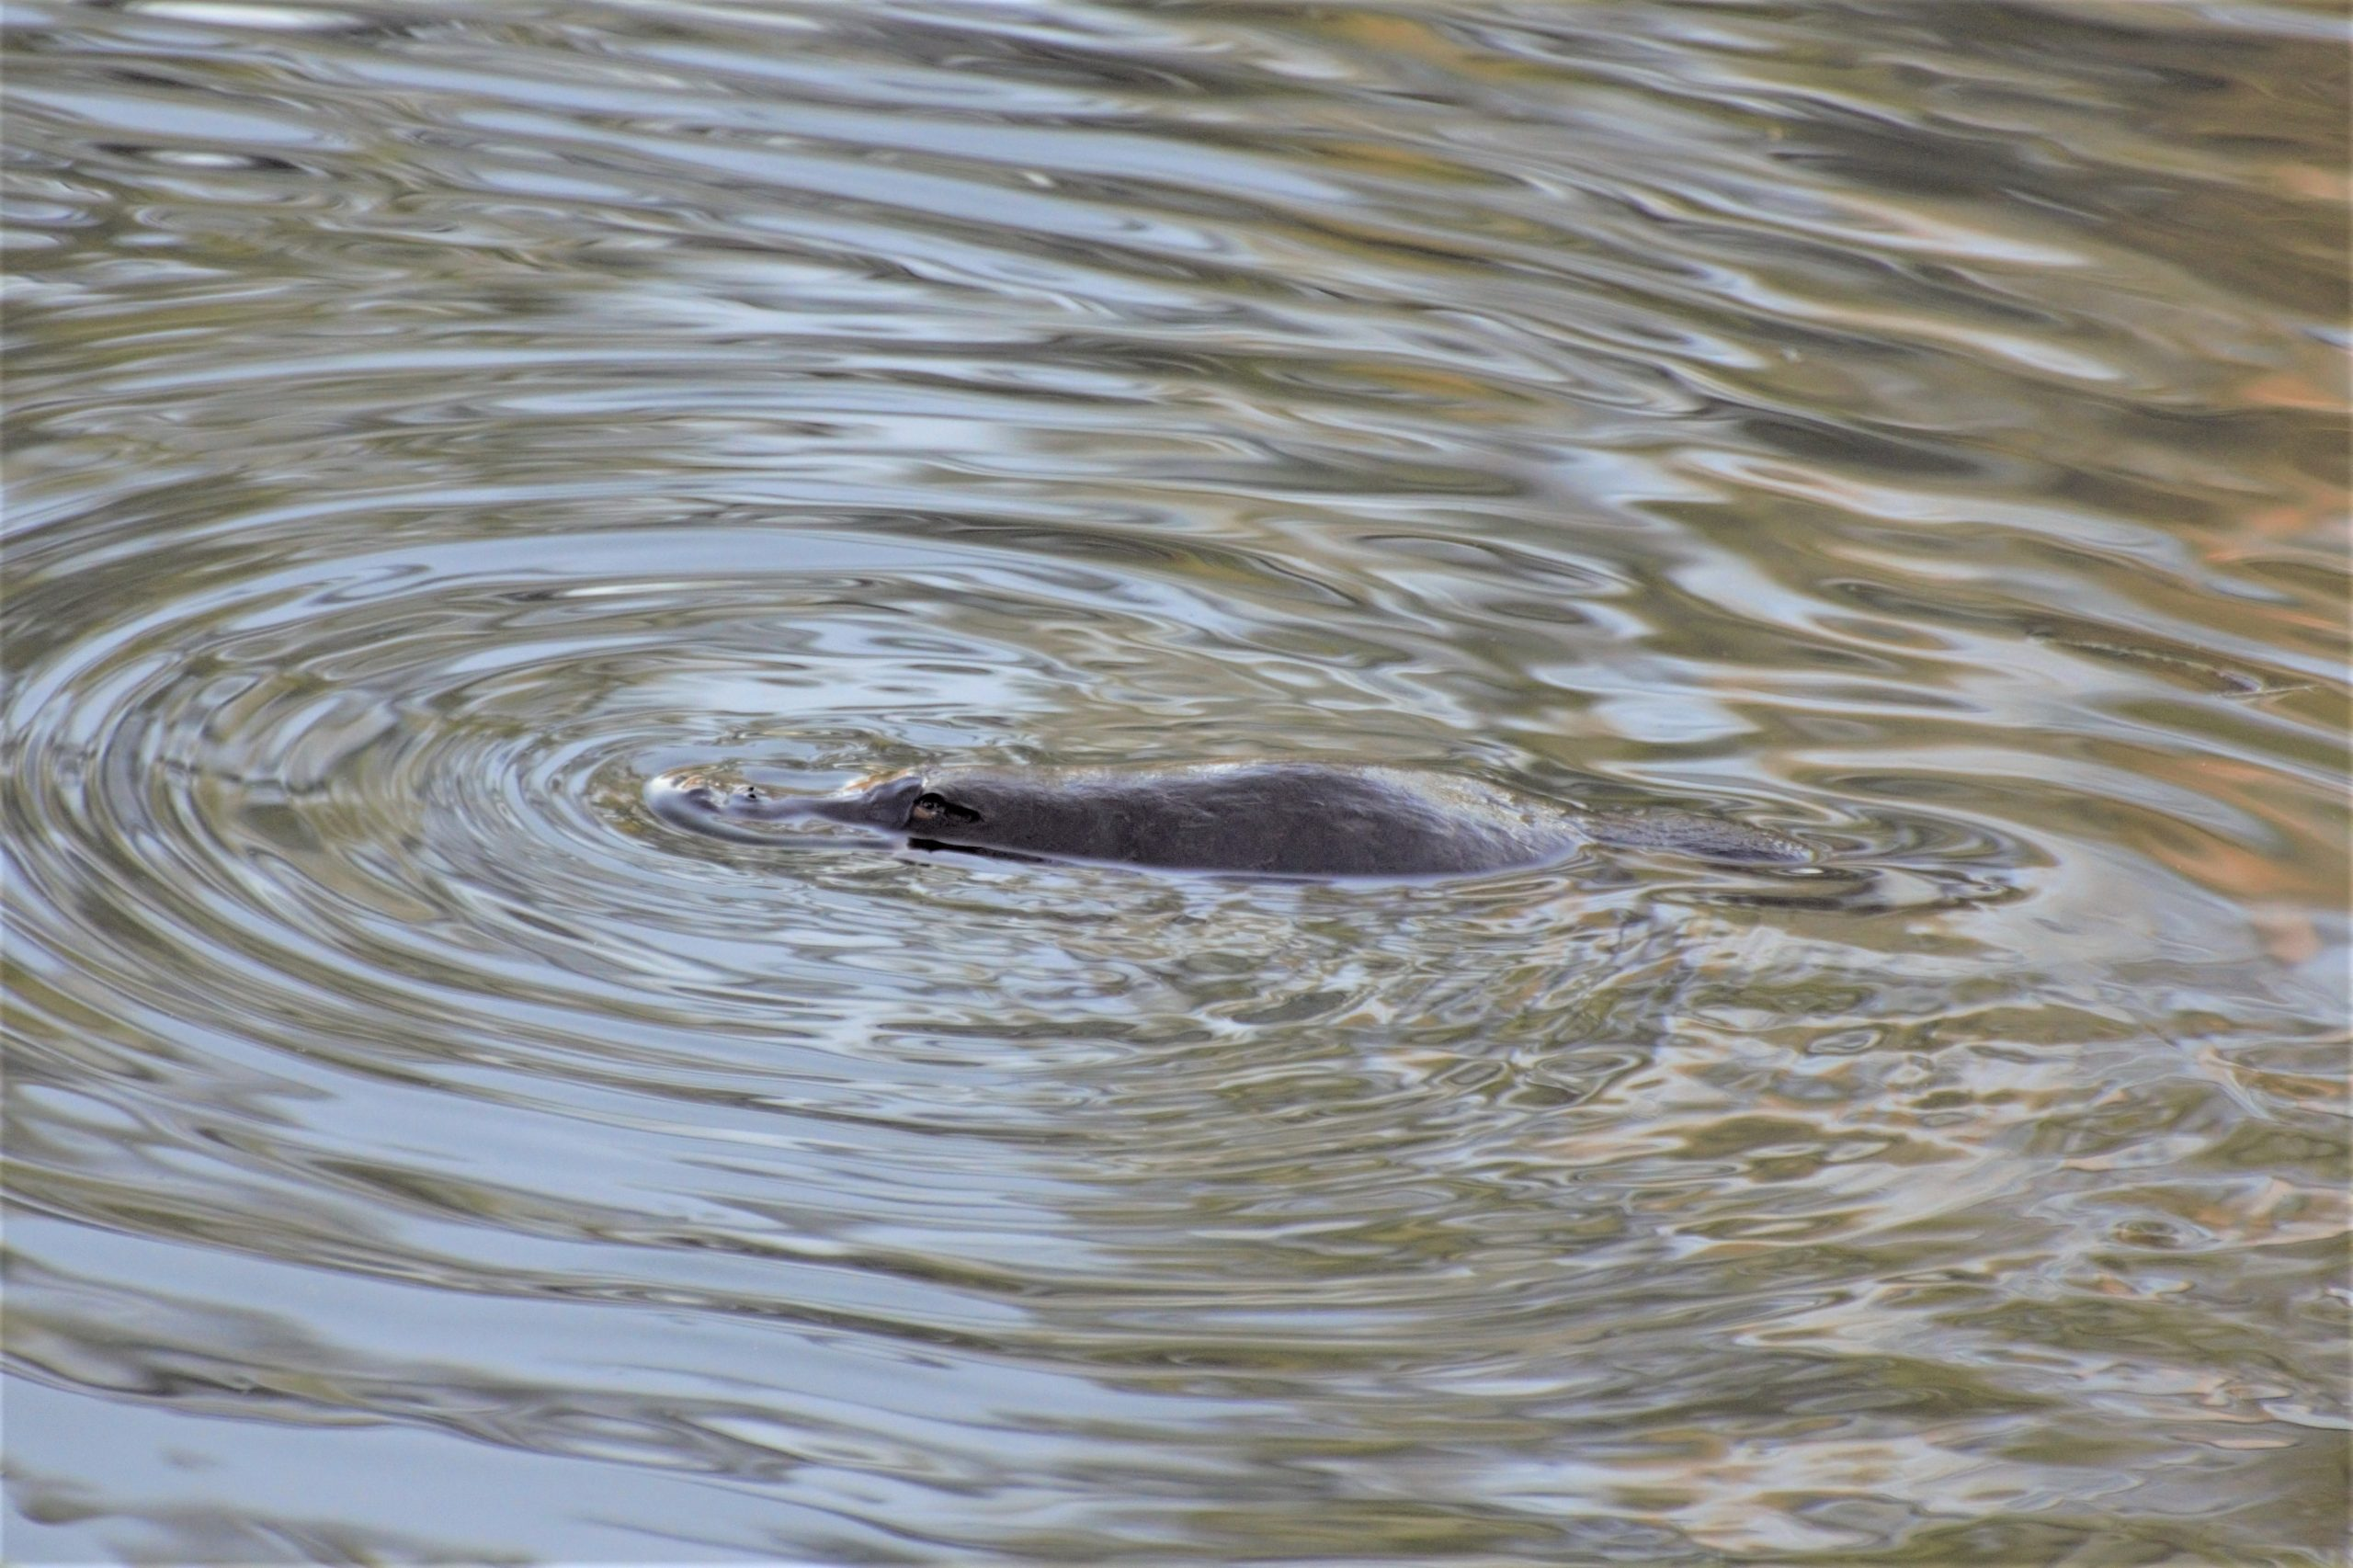 Have you spotted a platypus?